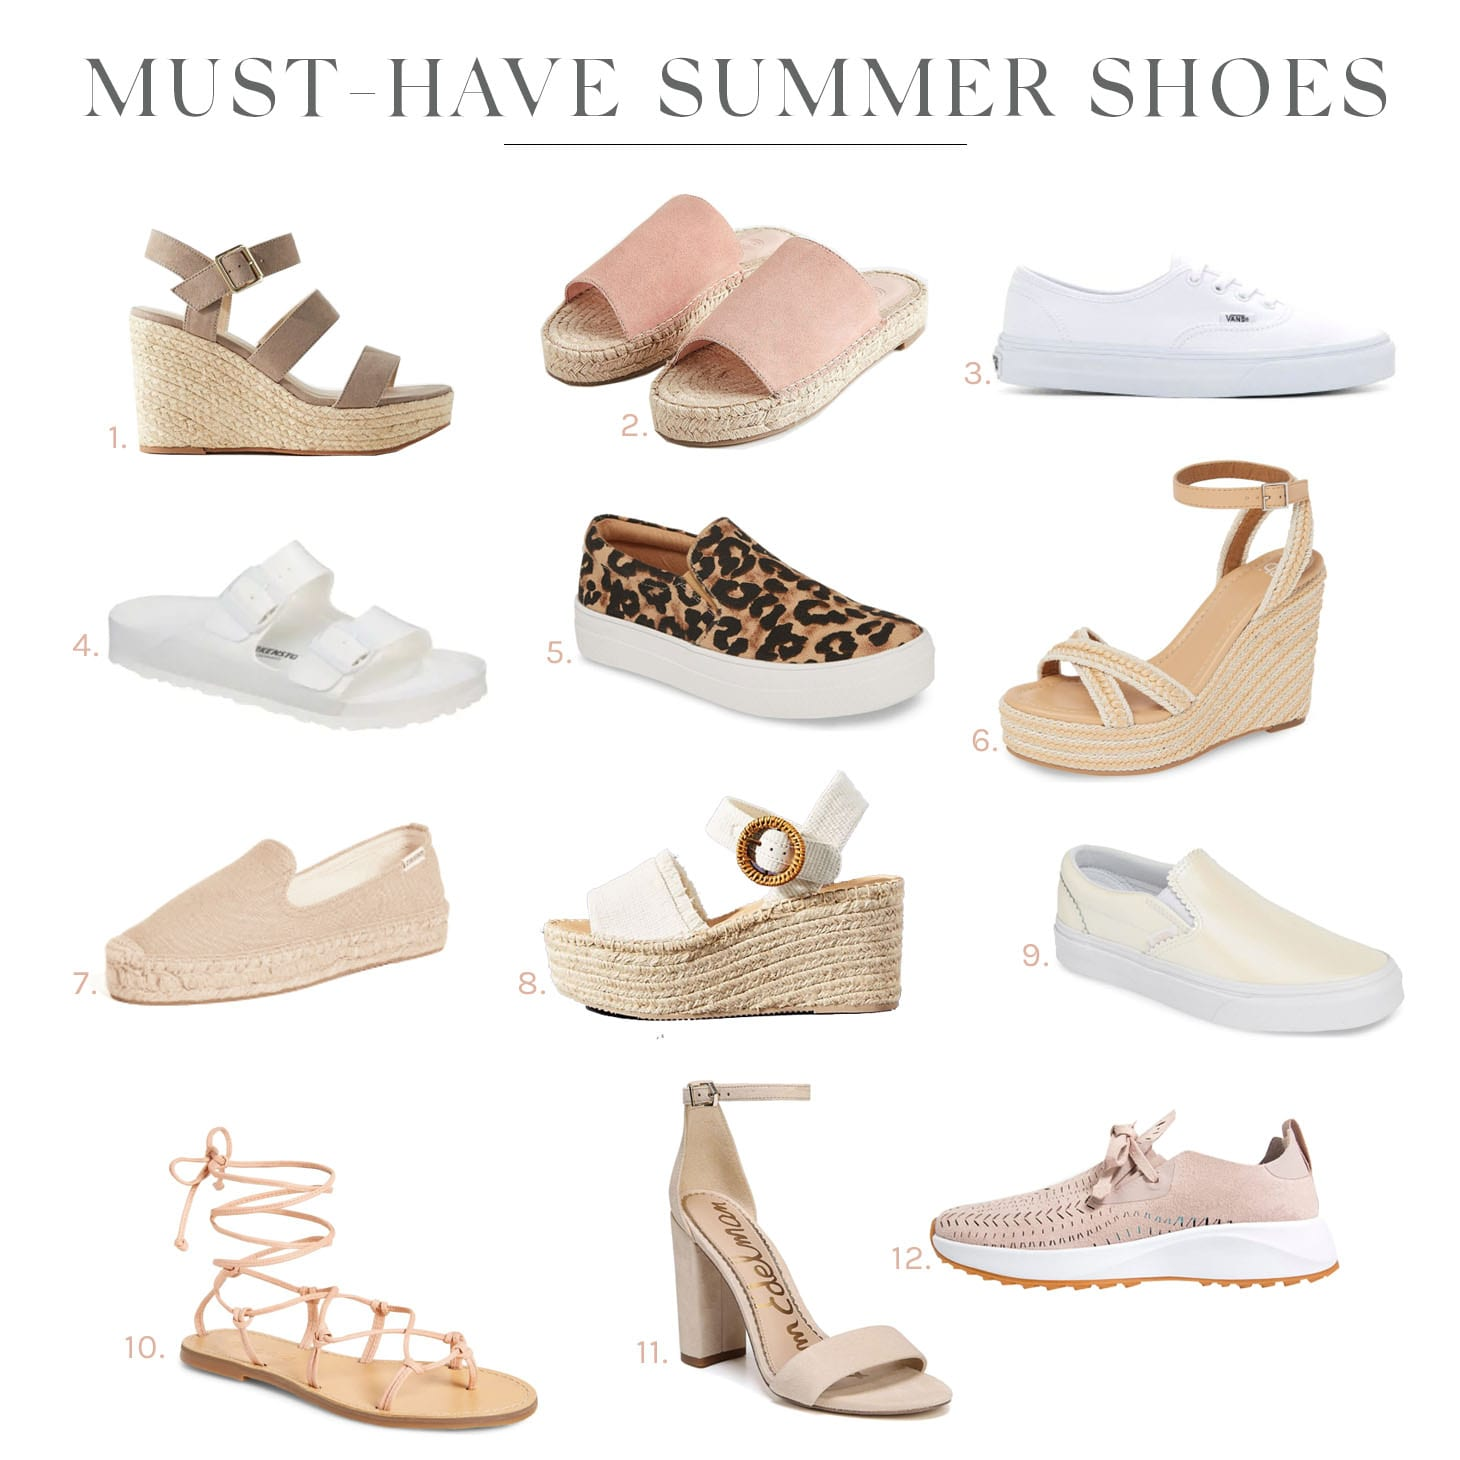 My Favourite Must-Have Summer Shoes